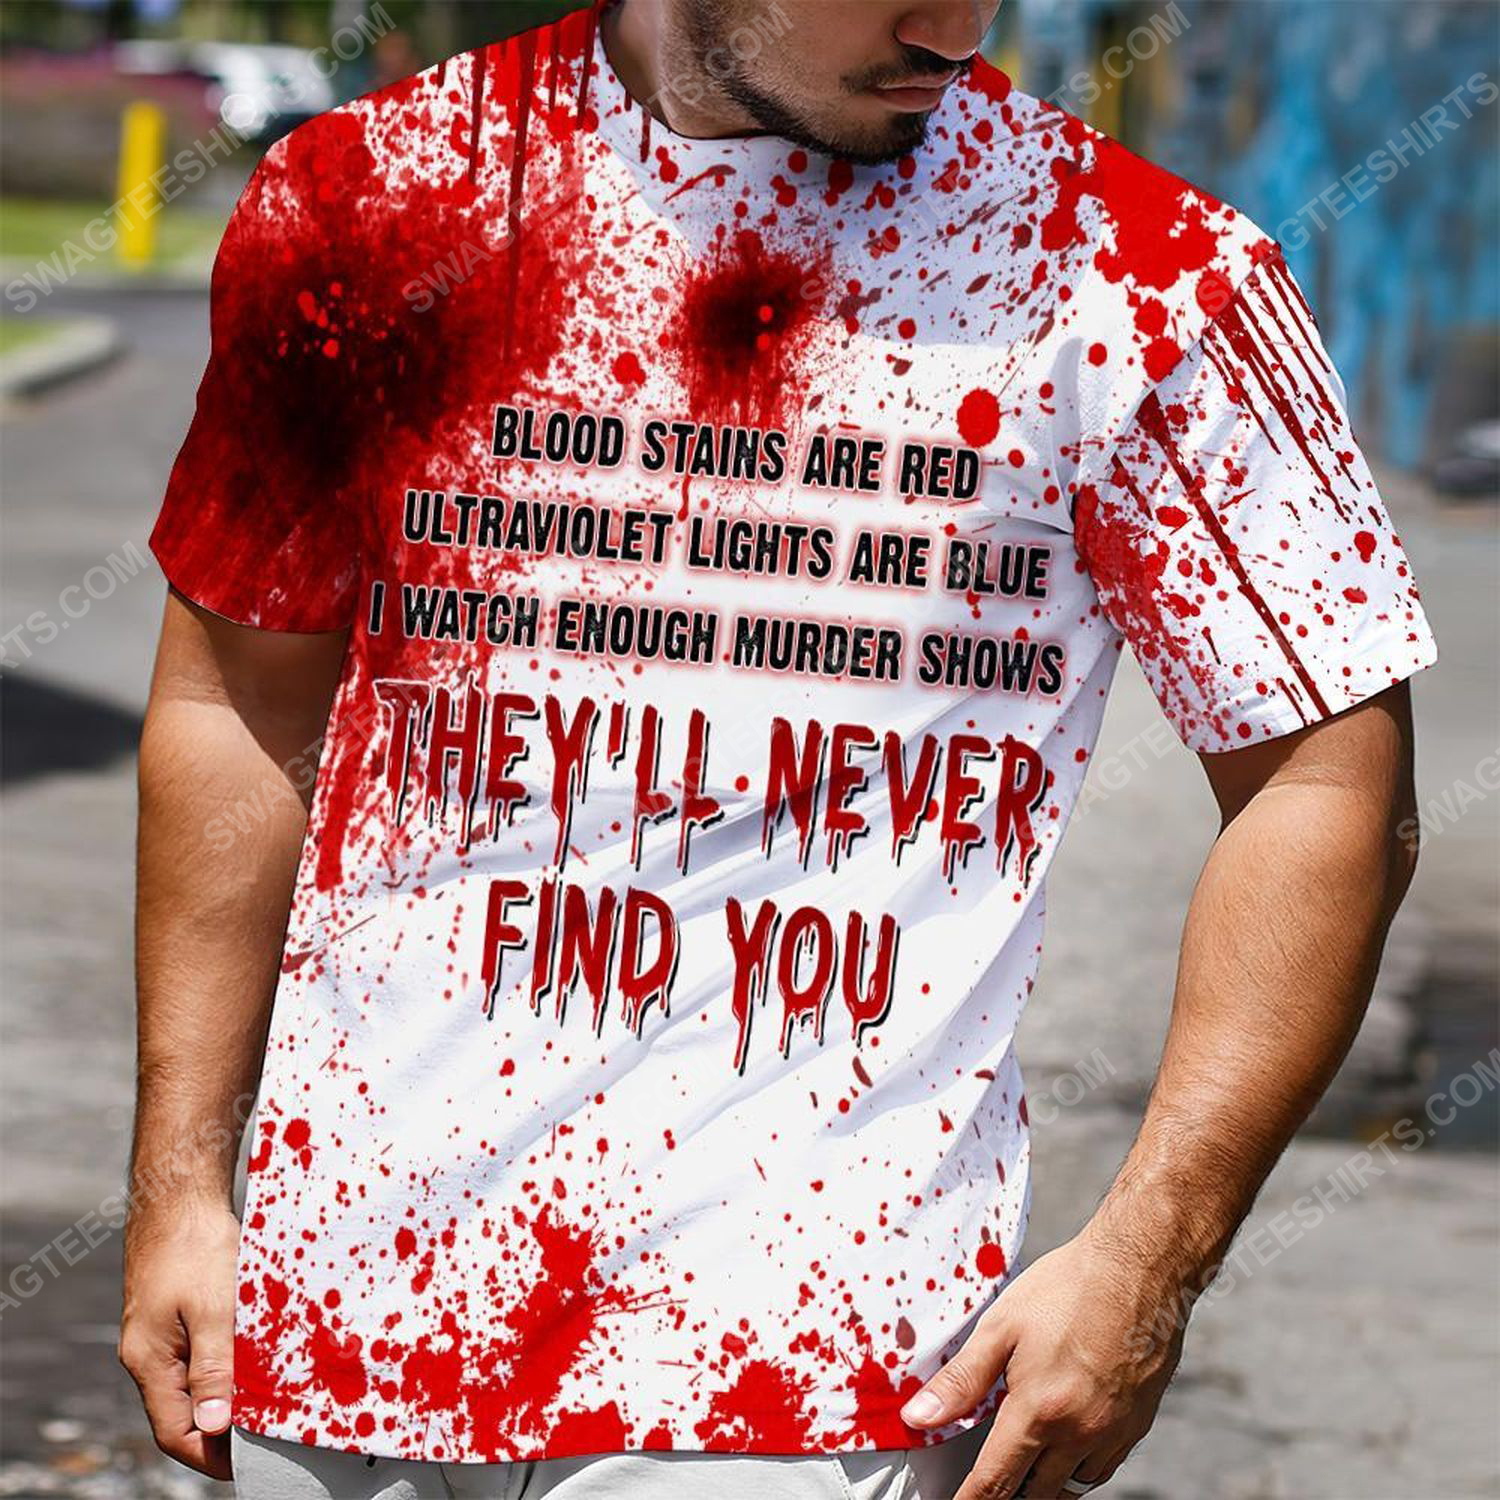 Halloween blood stains are red ultraviolet lights are blue i watch enough murder shows they'll never find you tshirt